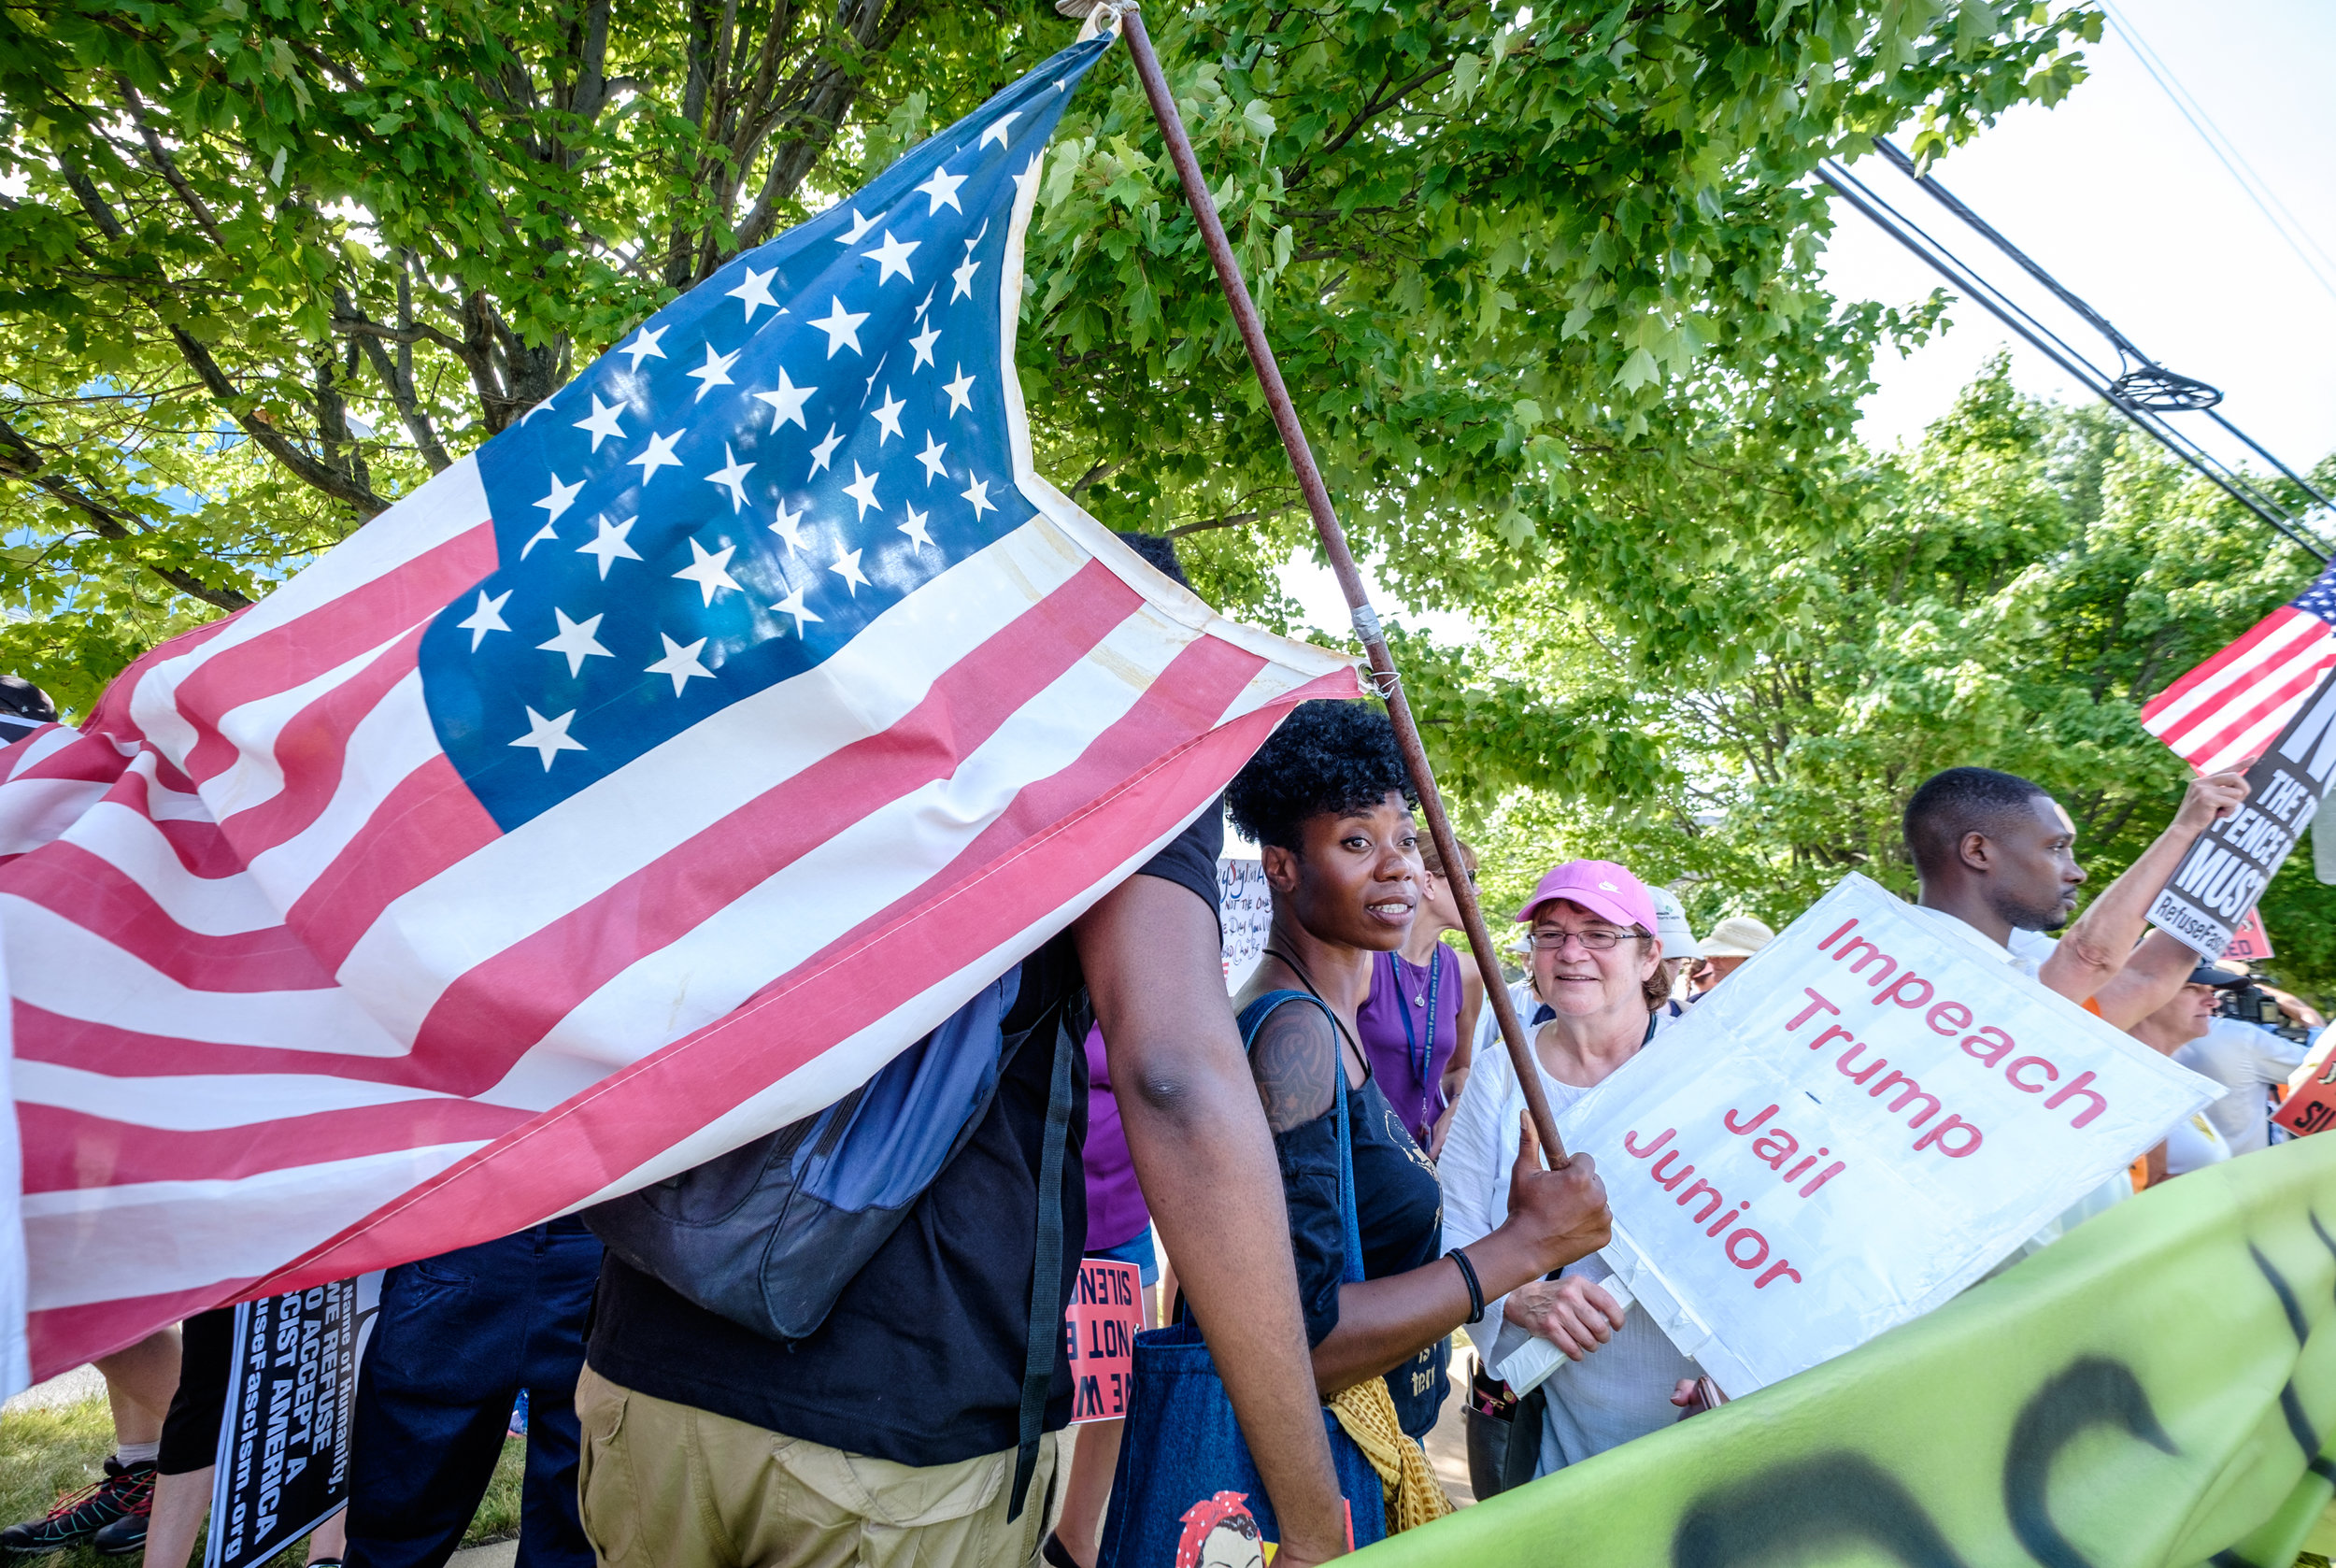 """Tamara Lee, from NYC, is seen at the Women's March From #NRA2DOJ rally at the National Rifle Association Headquarters in Fairfax, VA on Friday, July 14, 2017. """"I am … doing a research project on The Gathering for Justice, which is the umbrella organization that houses the Women's March, also the Justice League New York. And I think the important thing is that we have to protect the First Amendment rights to be out here, so when we have a propaganda that labels us as not peaceful. This is a tactic that we've seen before and we do the same thing we did then, which is to stand peacefully and say who we are. Right? So we're doing that. Also there is a problem in the country with the Second Amendment not being applied equally to black and brown folks. And we would like the NRA, if they are the organization that they say they are, to actually stand up for the rights of lawfully owning gun owners who are black and brown. So this is also about Philando Castile, which brings us to a larger issue. These are the intersectional issues that we're looking at where race and equality and women's rights, they're all tied together. … And so if we can't stand and resist this government peacefully then we don't have first amendment rights. If we don't have first amendment rights, you don't have second amendment rights. And if we don't have fourteenth amendment rights what are we here for? So that's why I'm here.""""  The Women's March from #NRA2DOJ is a demonstration against the NRA taking no action in response to the Philando Castile trial verdict. Following the rally demonstrators marched 18 miles from the NRA to the Department of Justice in Washington, DC."""